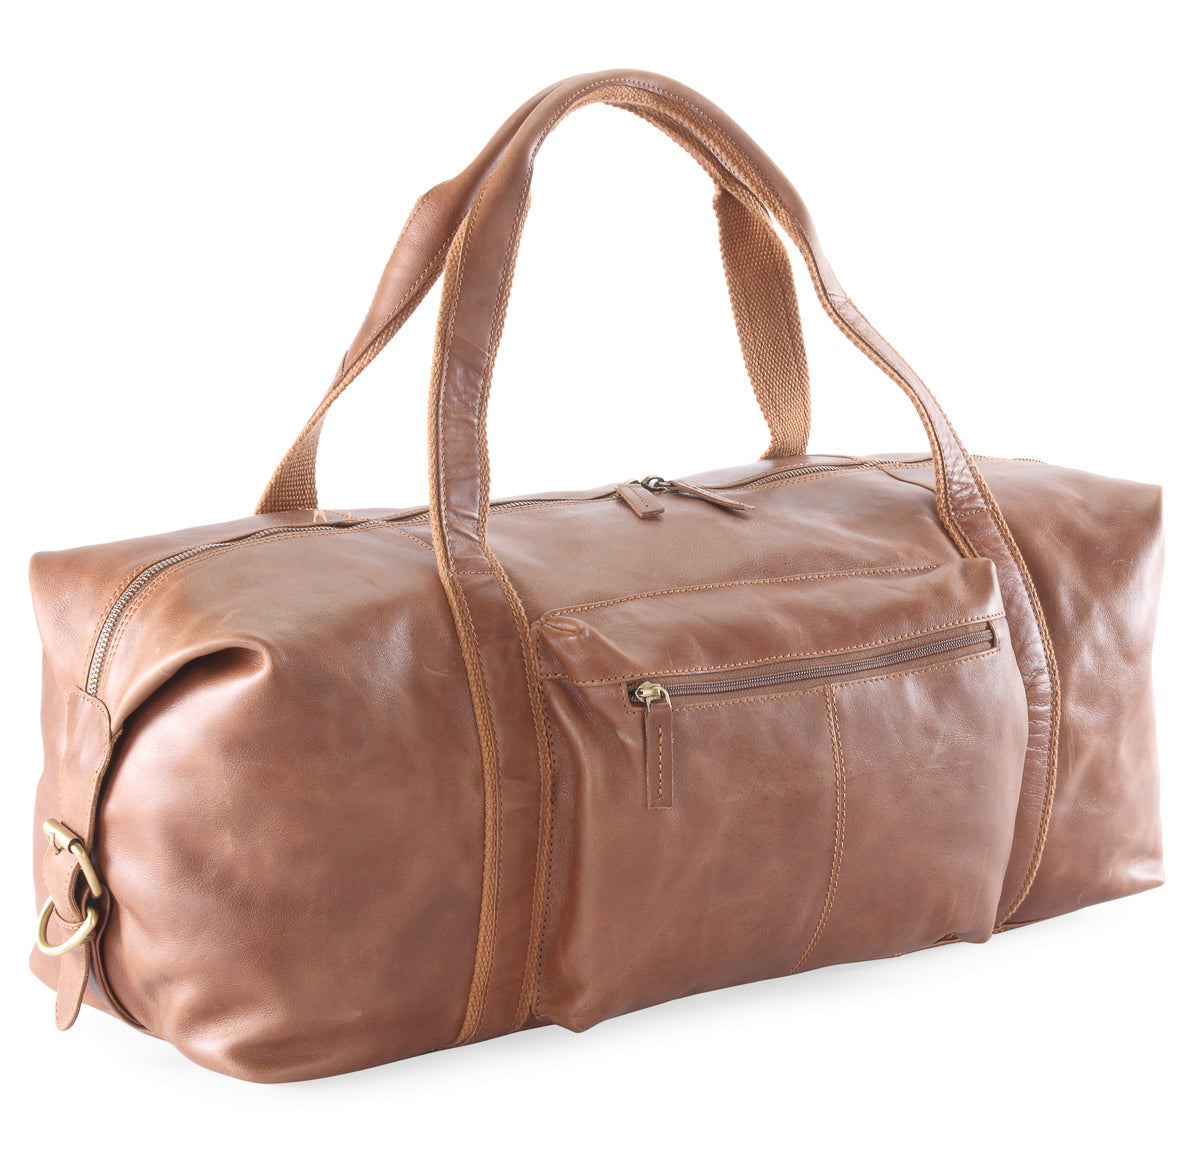 Frango Gym / Duffel Bag #TT09